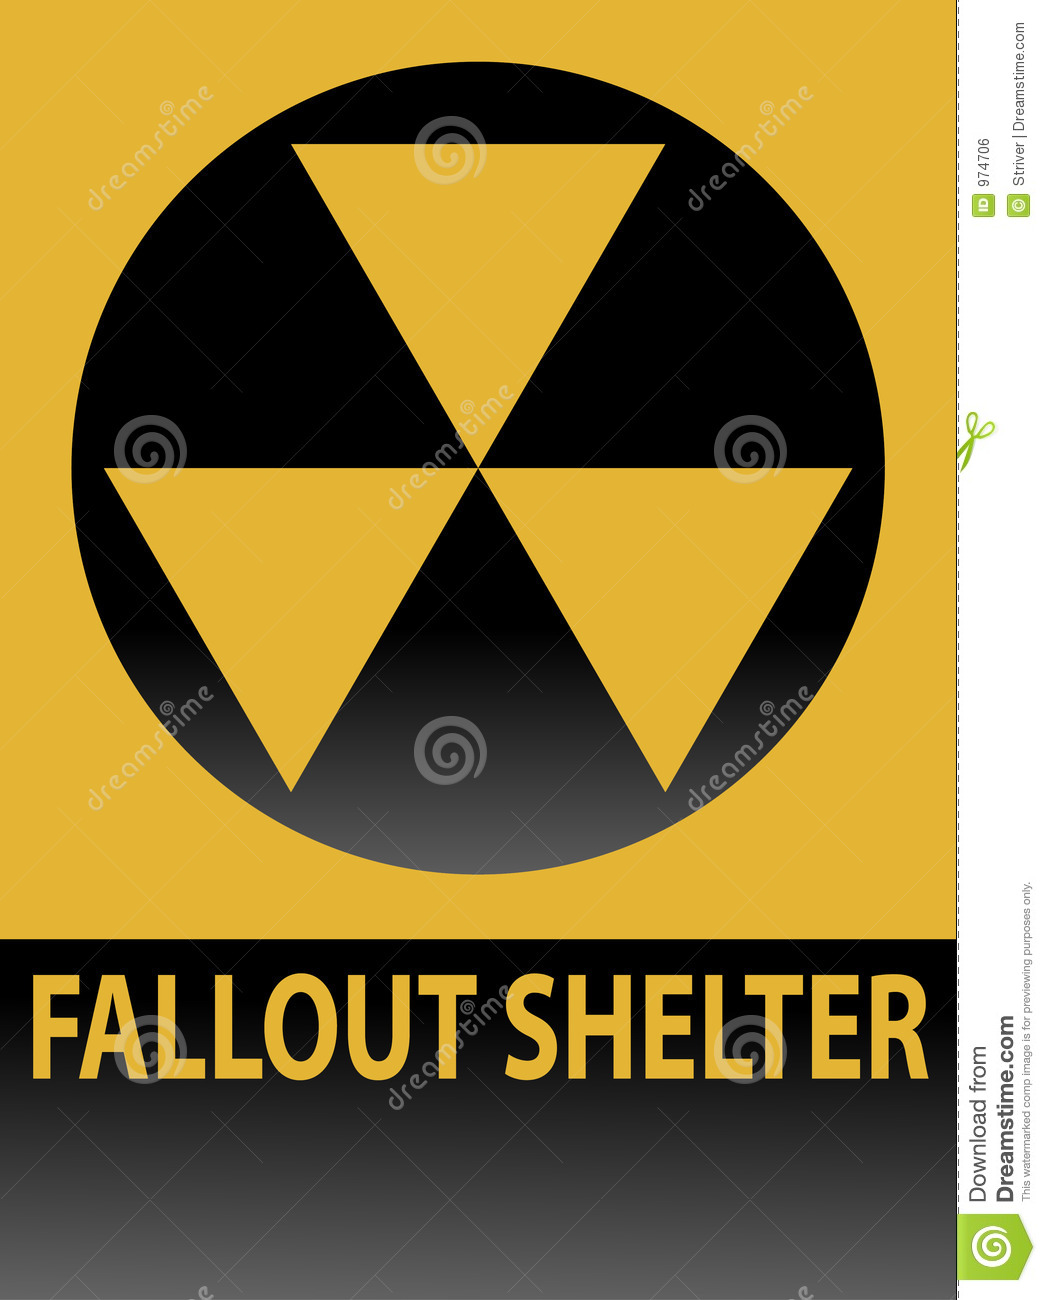 Shelter clipart fallout shelter. Sign panda free images